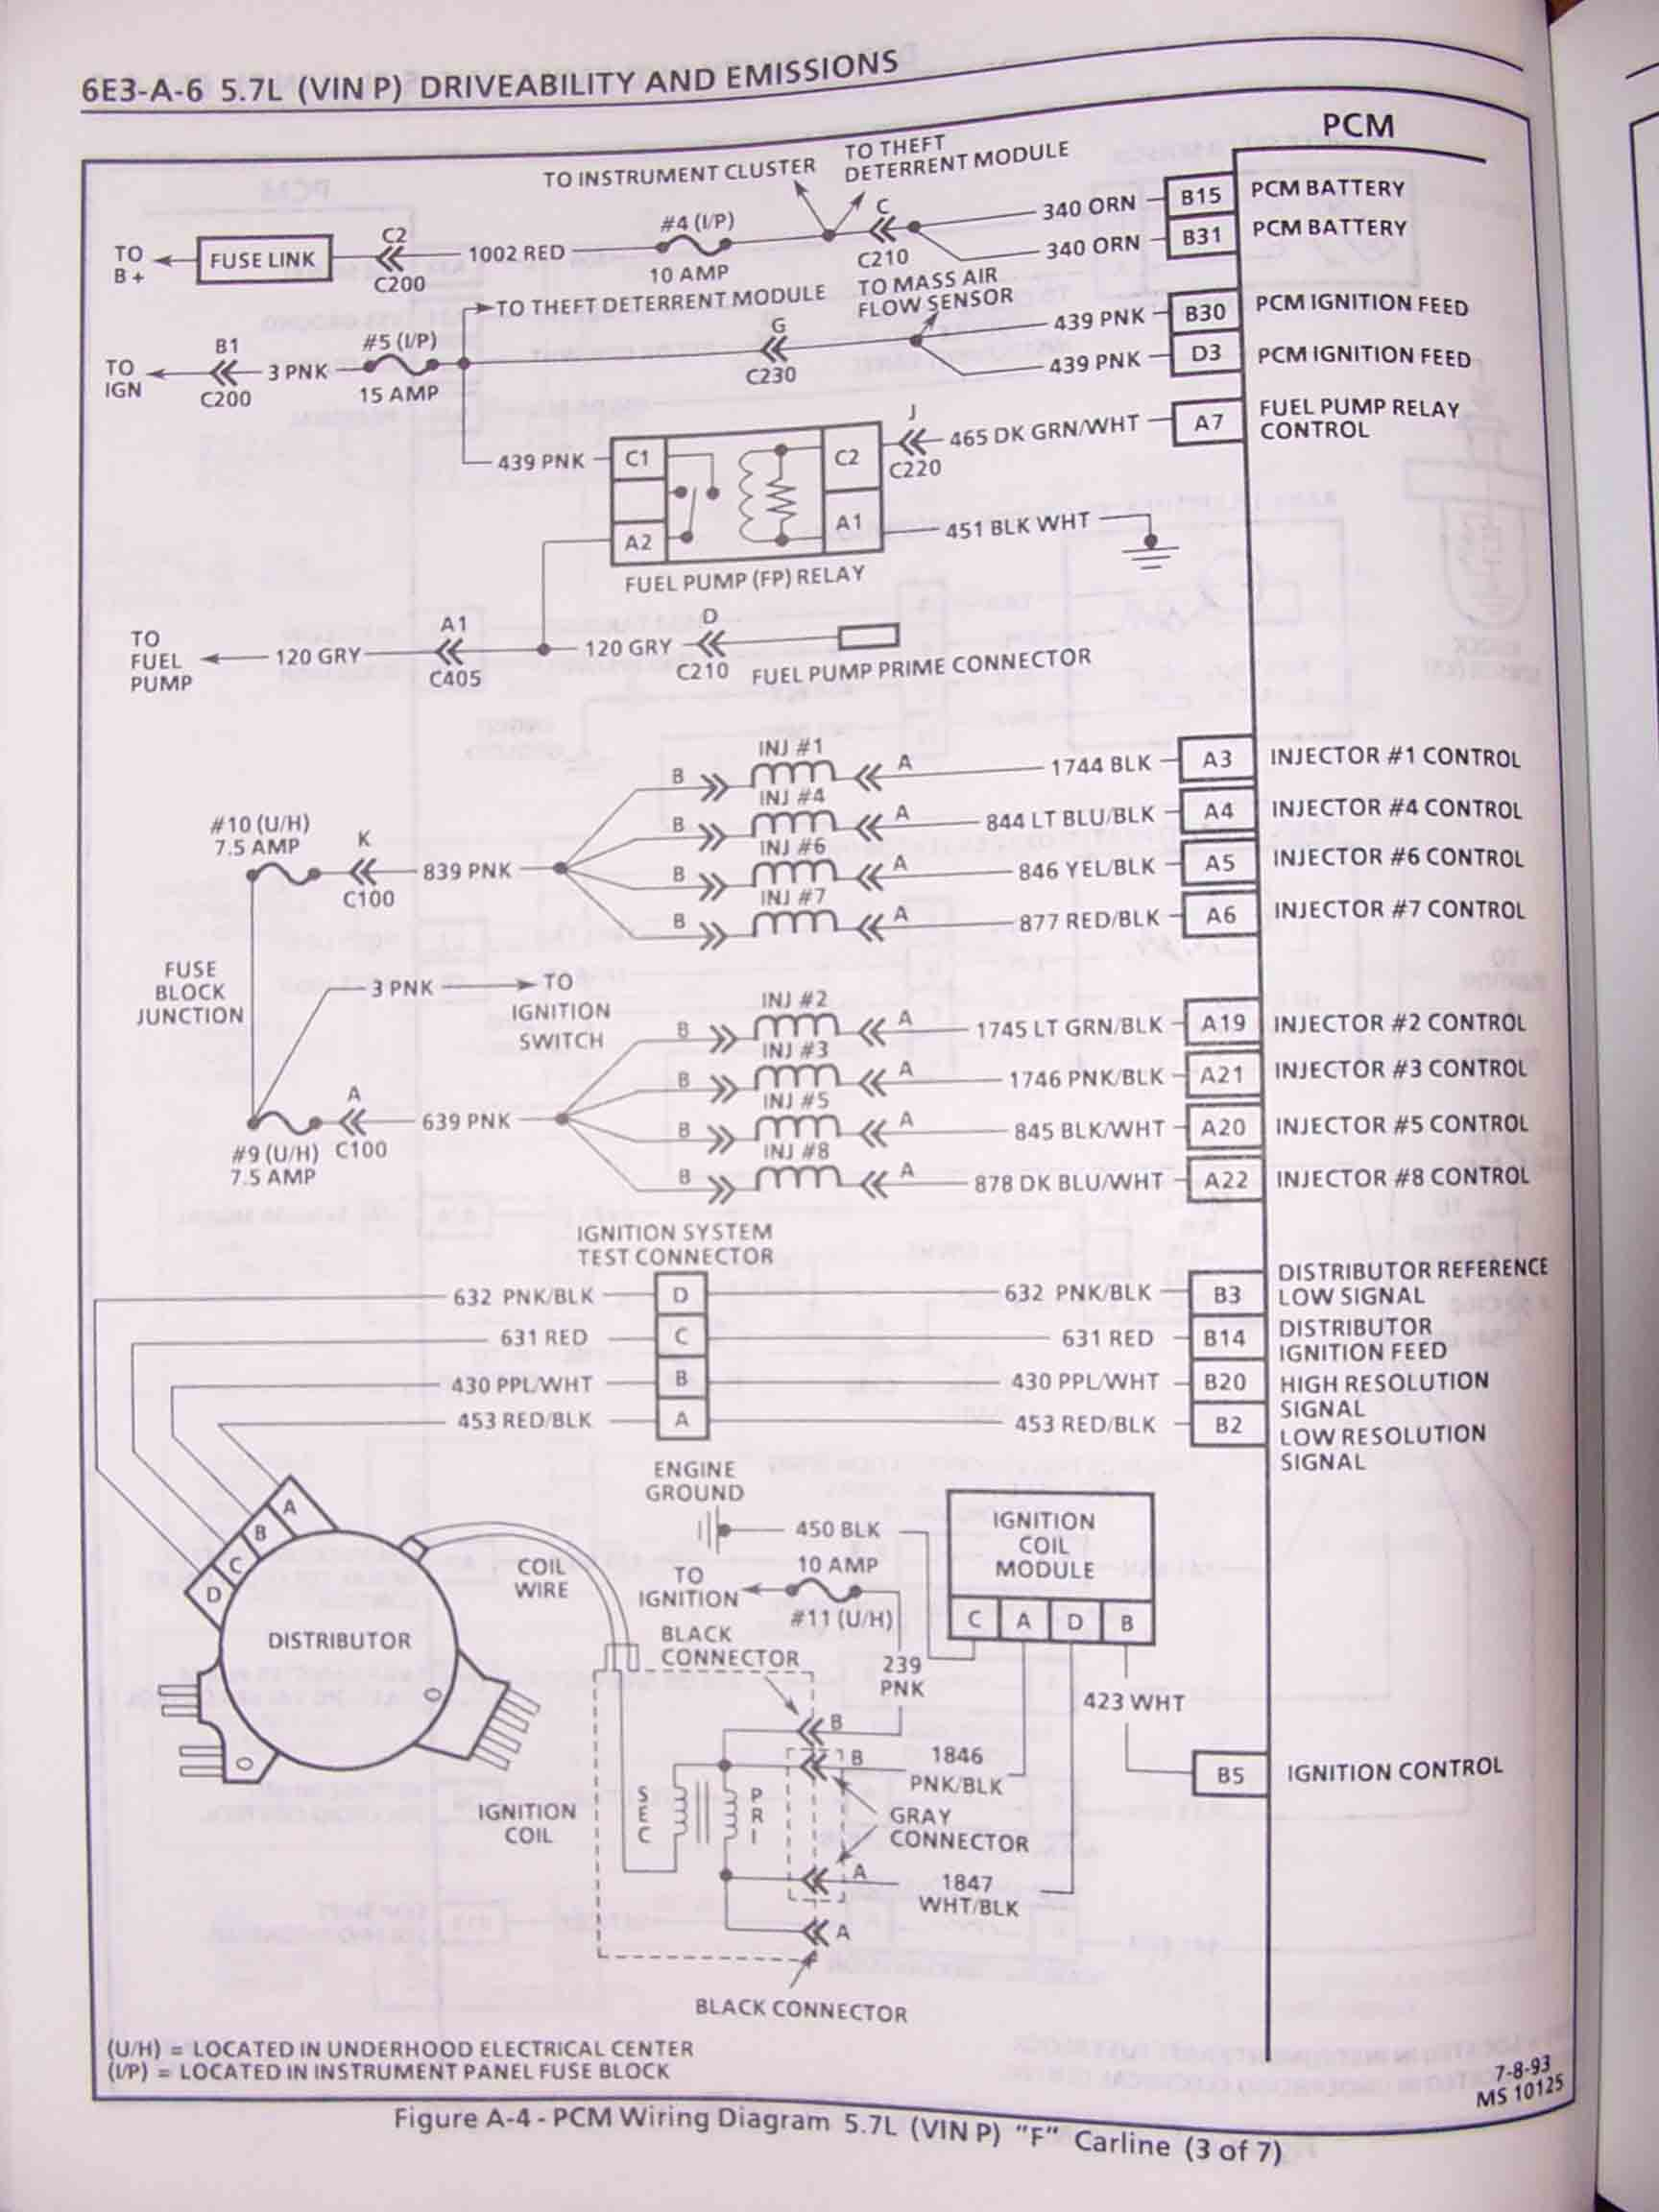 94 Lt1 Engine Wiring Diagram Library. Chevy Lt1 Engine Diagram Vacuum Wiring Stand Alone Harness 1994. Wiring. 1994 Lt1 Engine Wiring Harness At Scoala.co